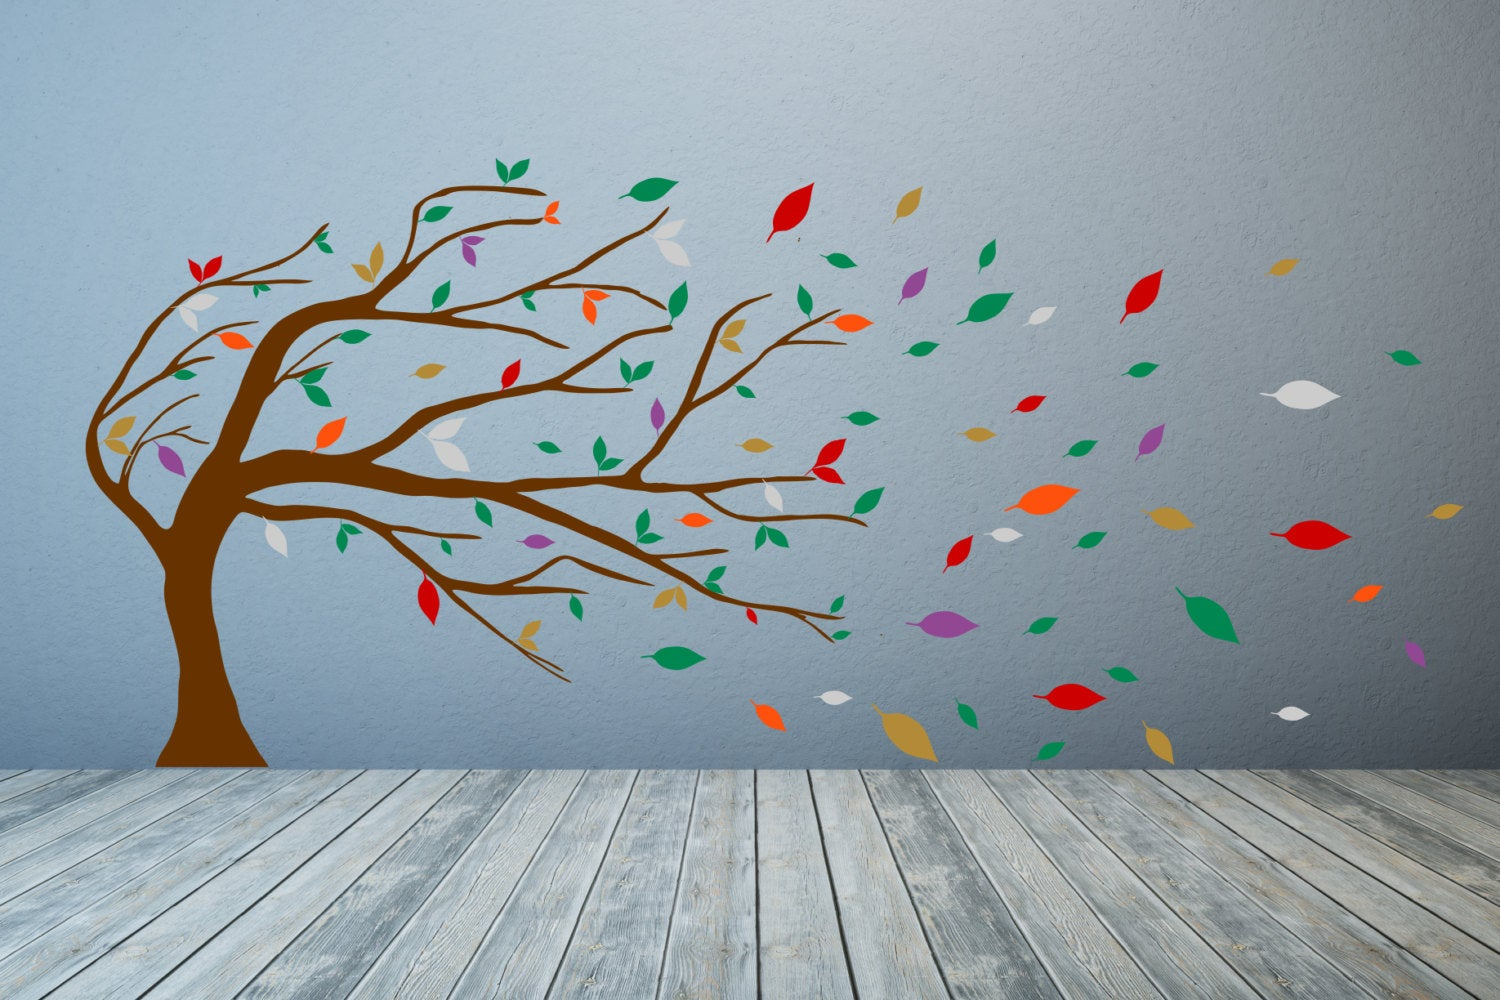 Windswept Tree & Leaves. Vinyl Wall Art Decal Sticker Quote. Any Colour And Size (View 10 of 30)